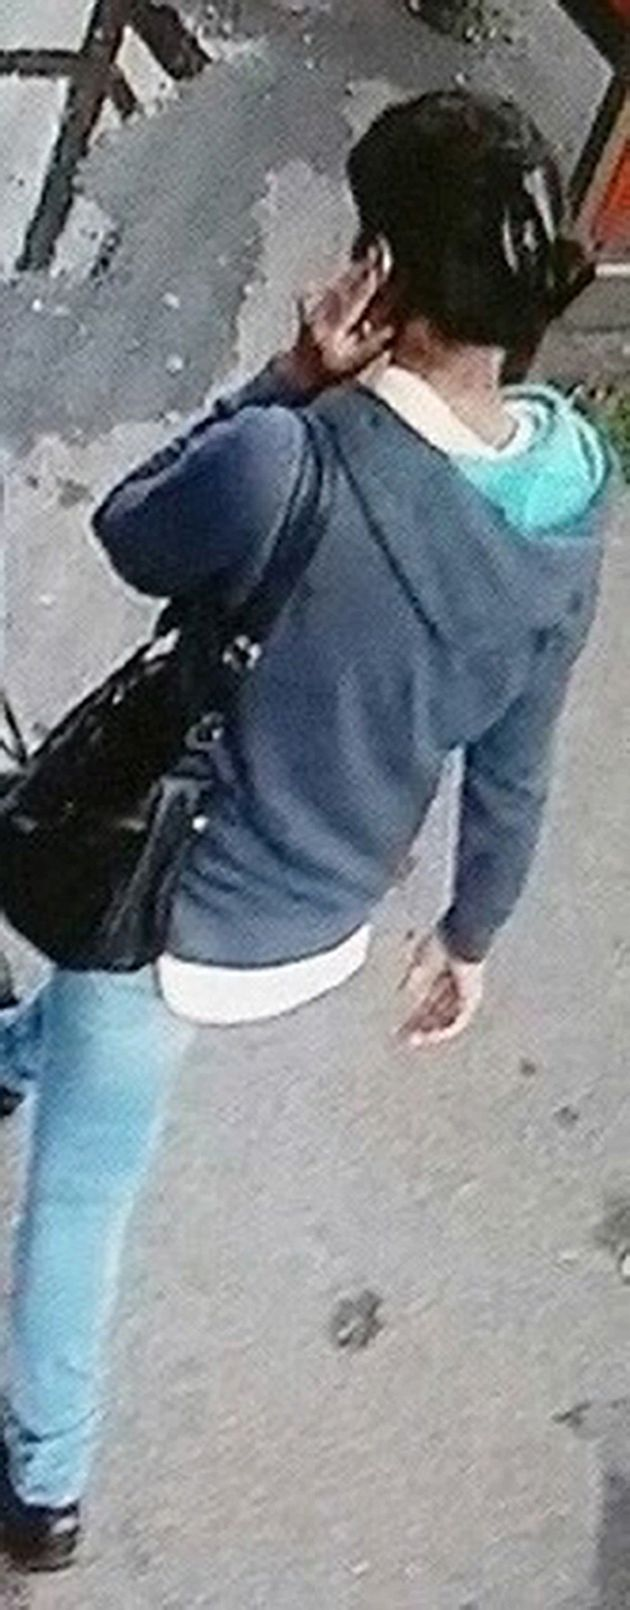 Police are yet to locate Kaur's black handbag seen in this image of her on the day before she went